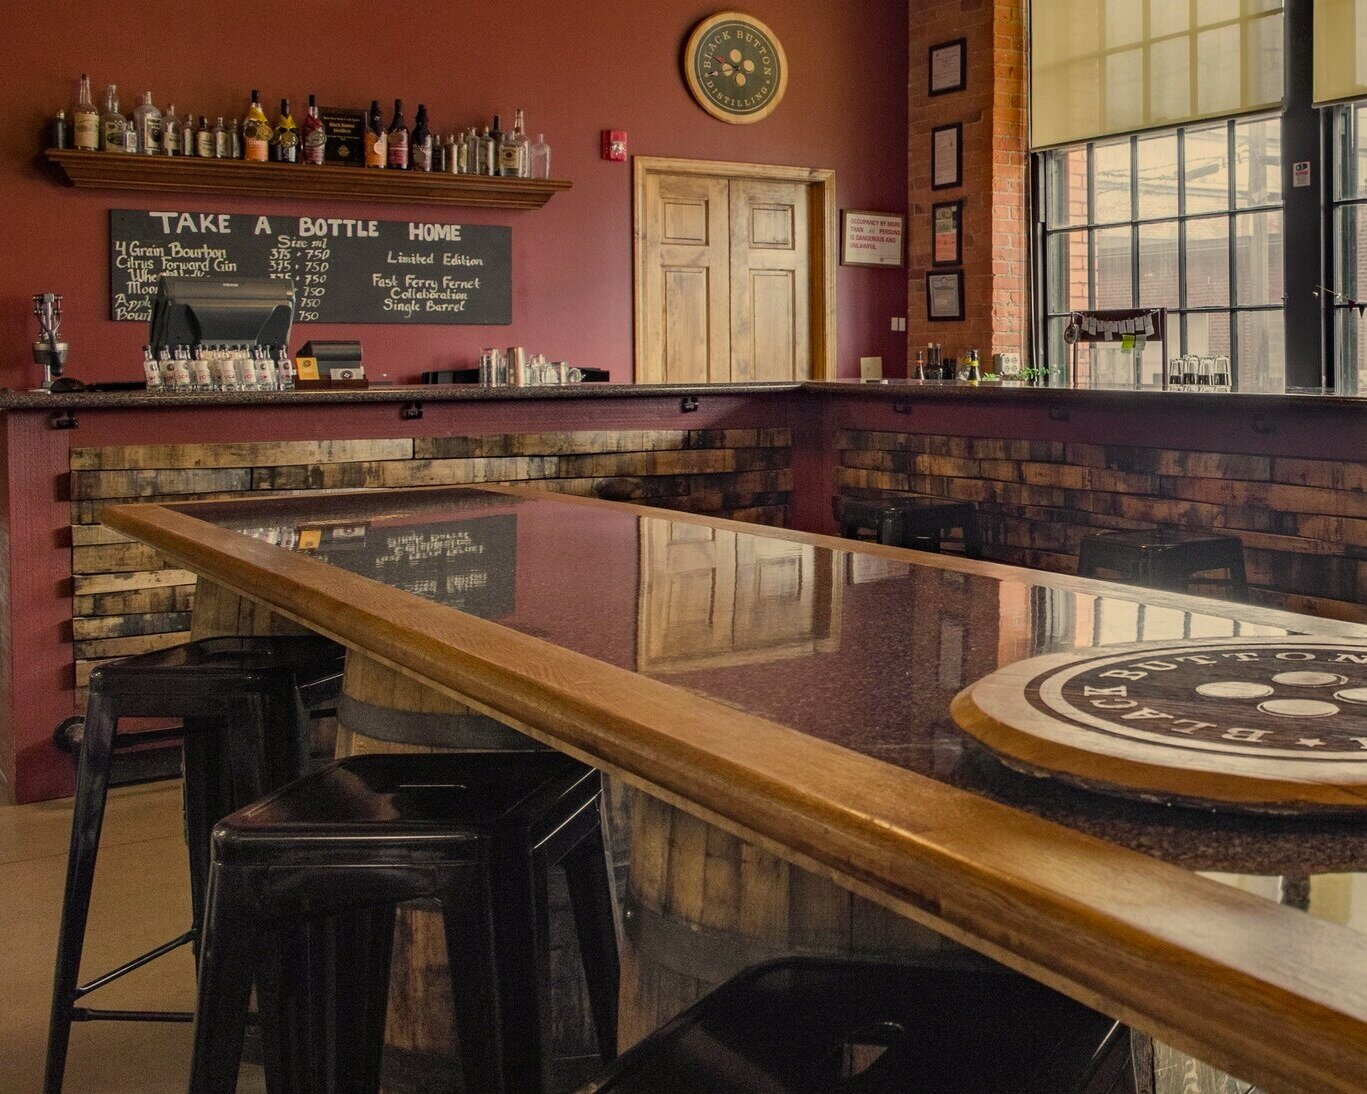 Tasting RooM - For parties up to 50